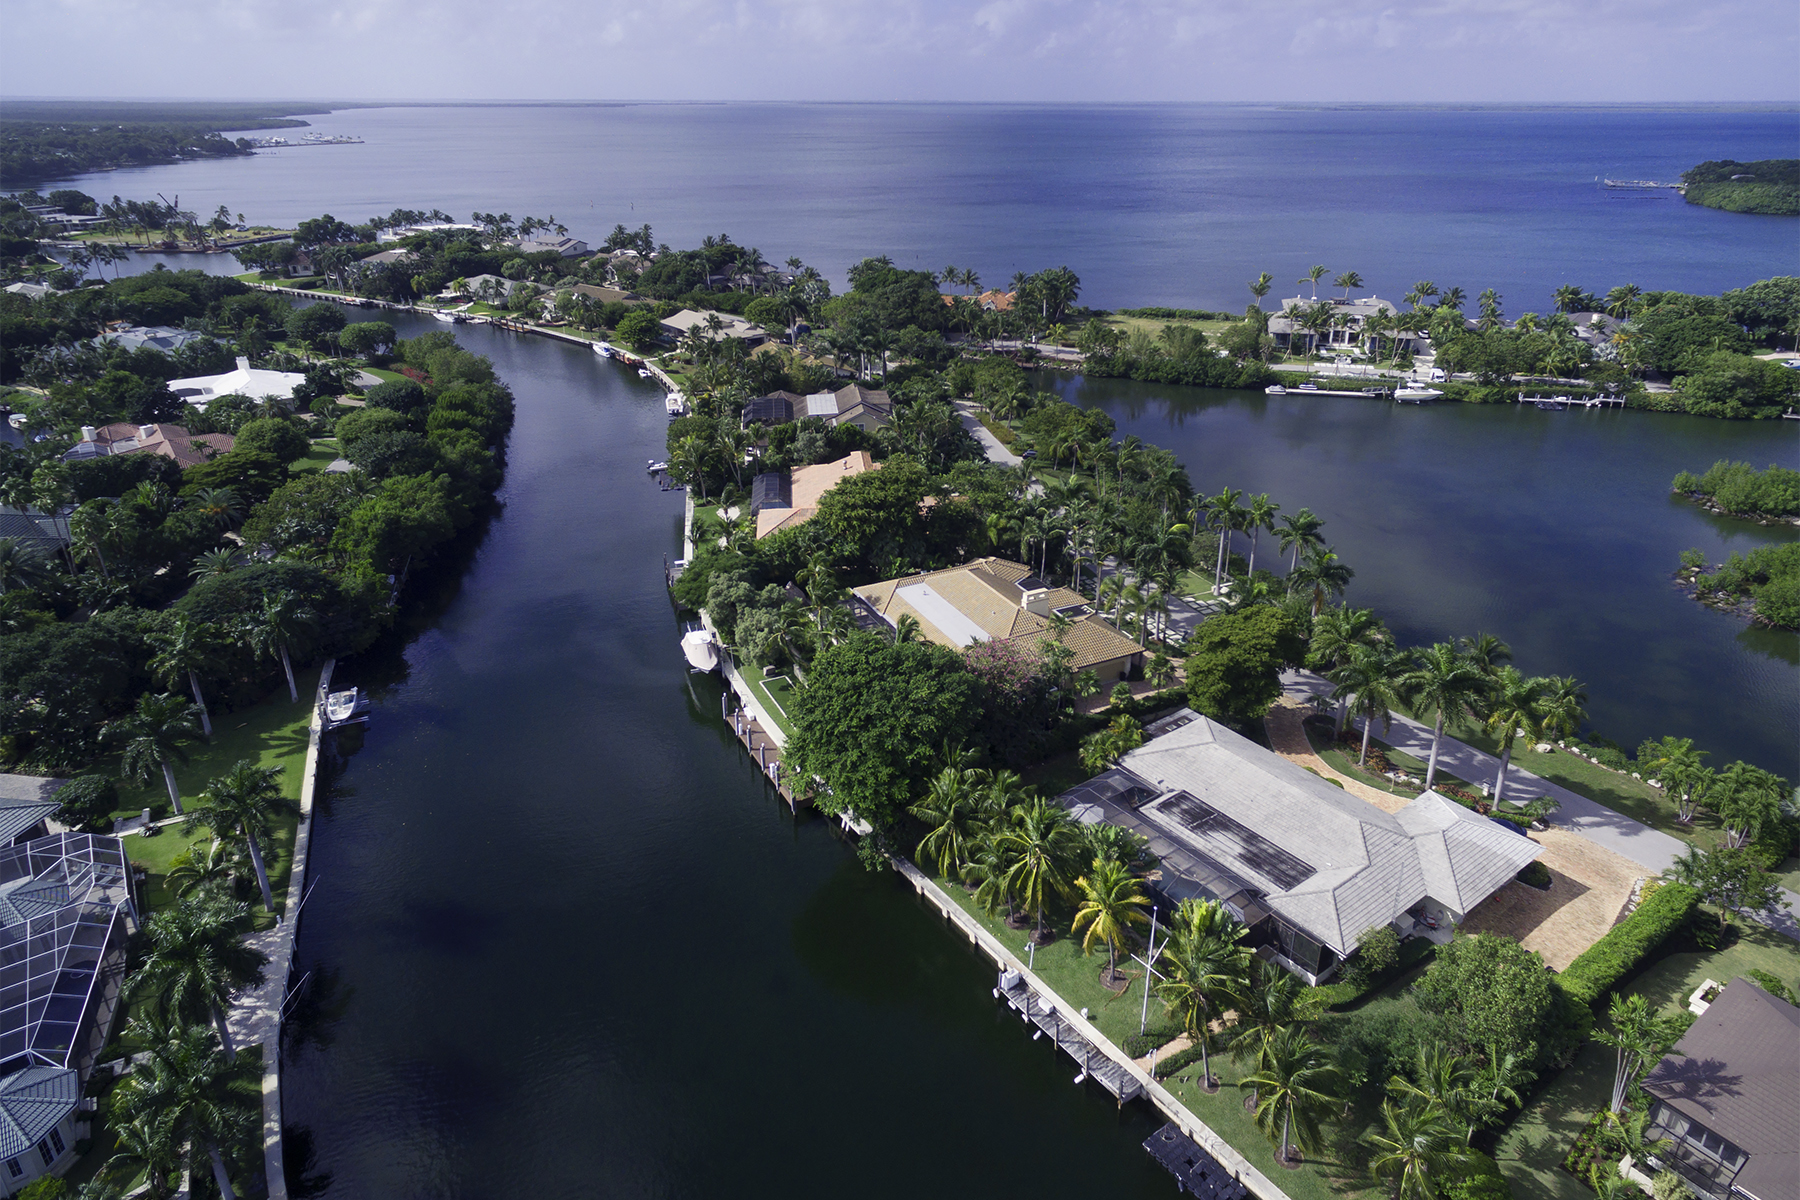 Single Family Home for Sale at Fabulous Waterfront Location at Ocean Reef 32 East Snapper Point Drive Key Largo, Florida, 33037 United States